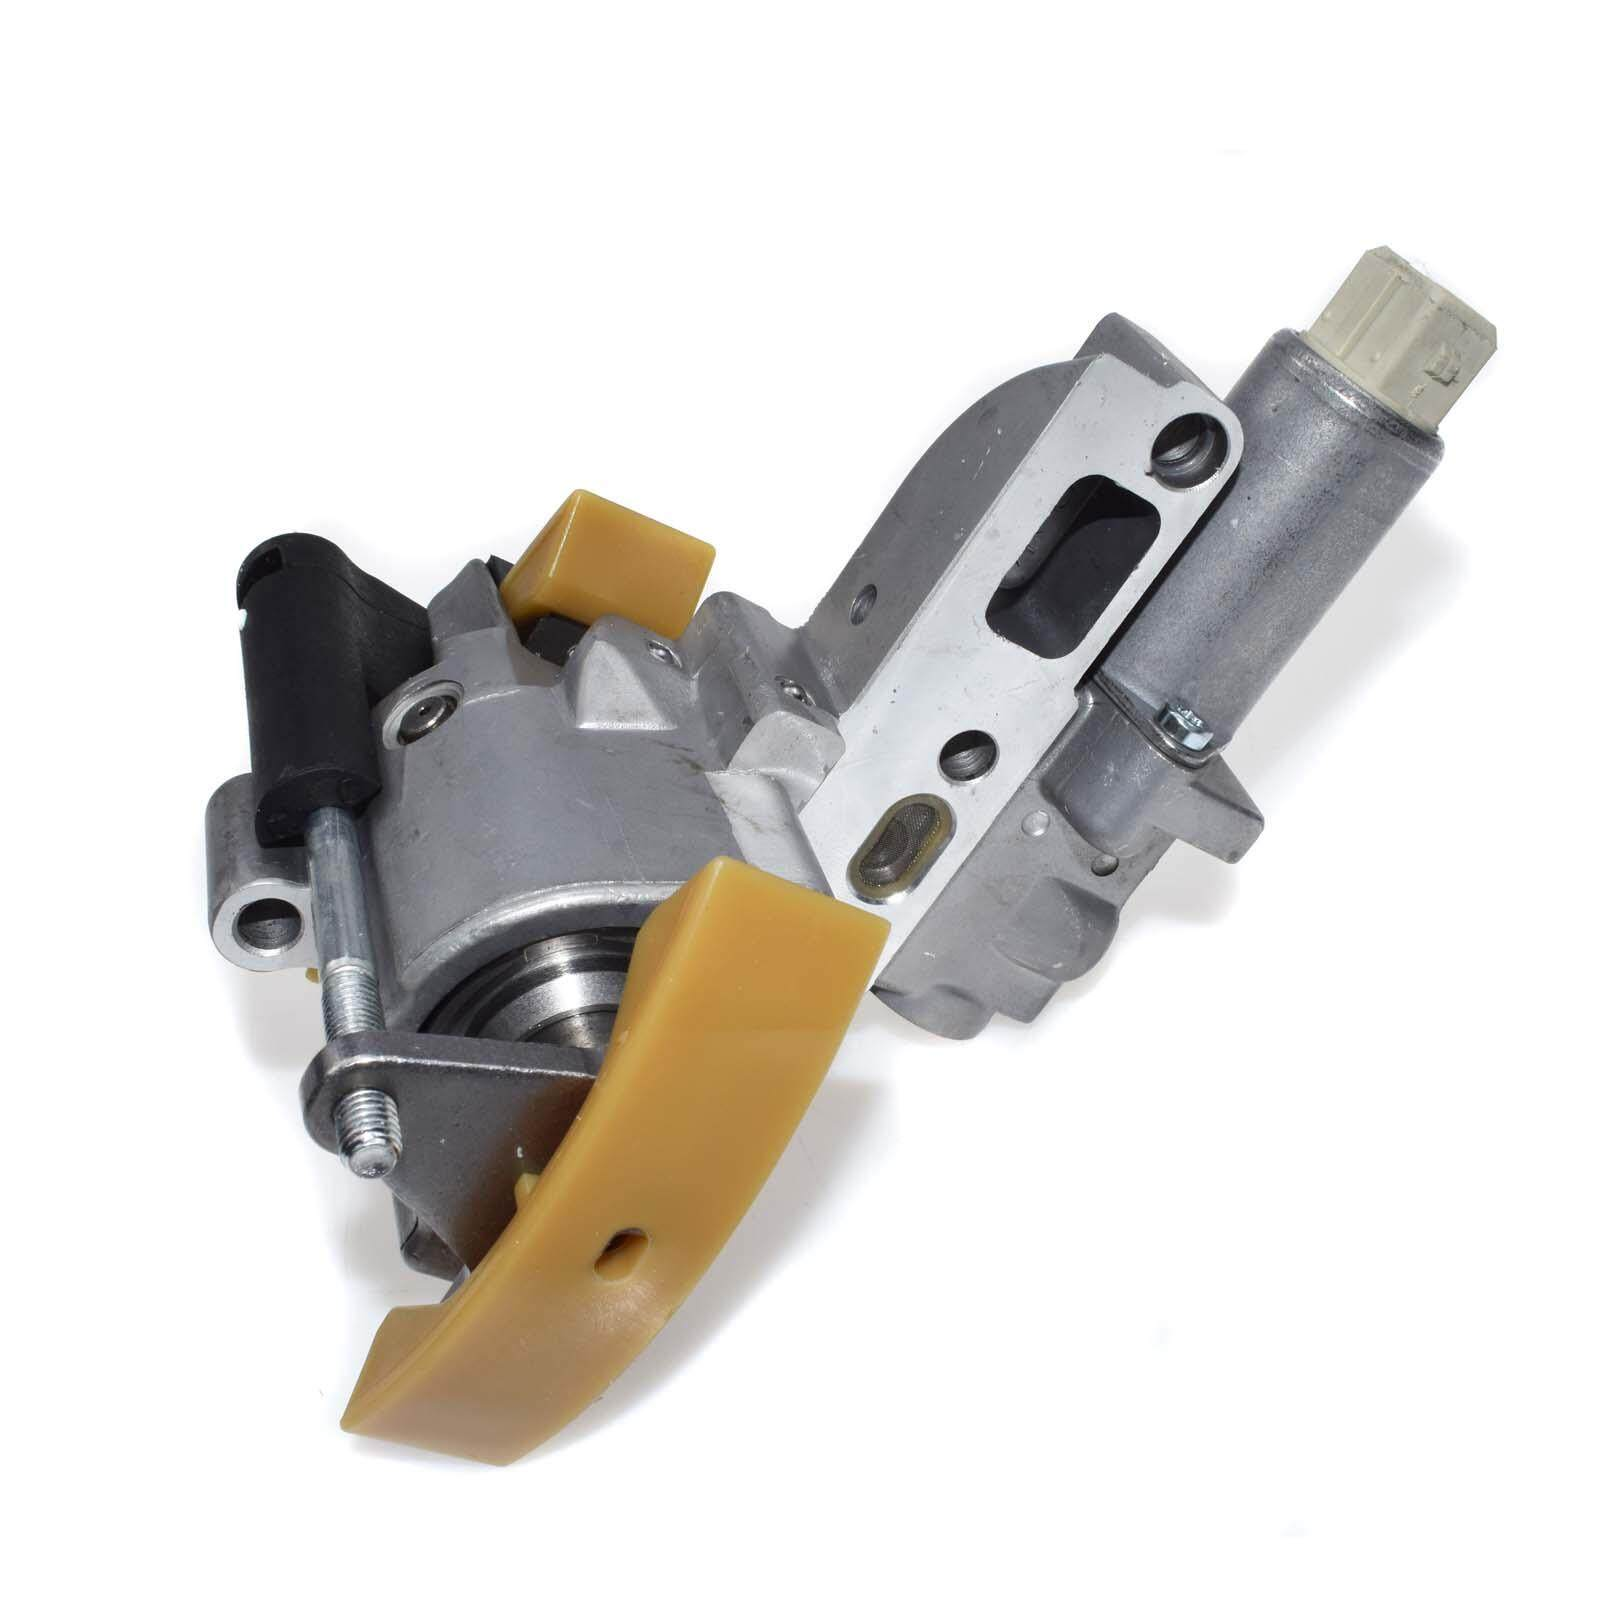 Engine Cam For Sale Parts Online Brands Prices Reviews In Honda Store 1999 Crv Camshaft Timing Belt New Chain Tensioner Adjuster Left 077109087p 077109087c Audi A6 A8 Quattro Rs6 S6